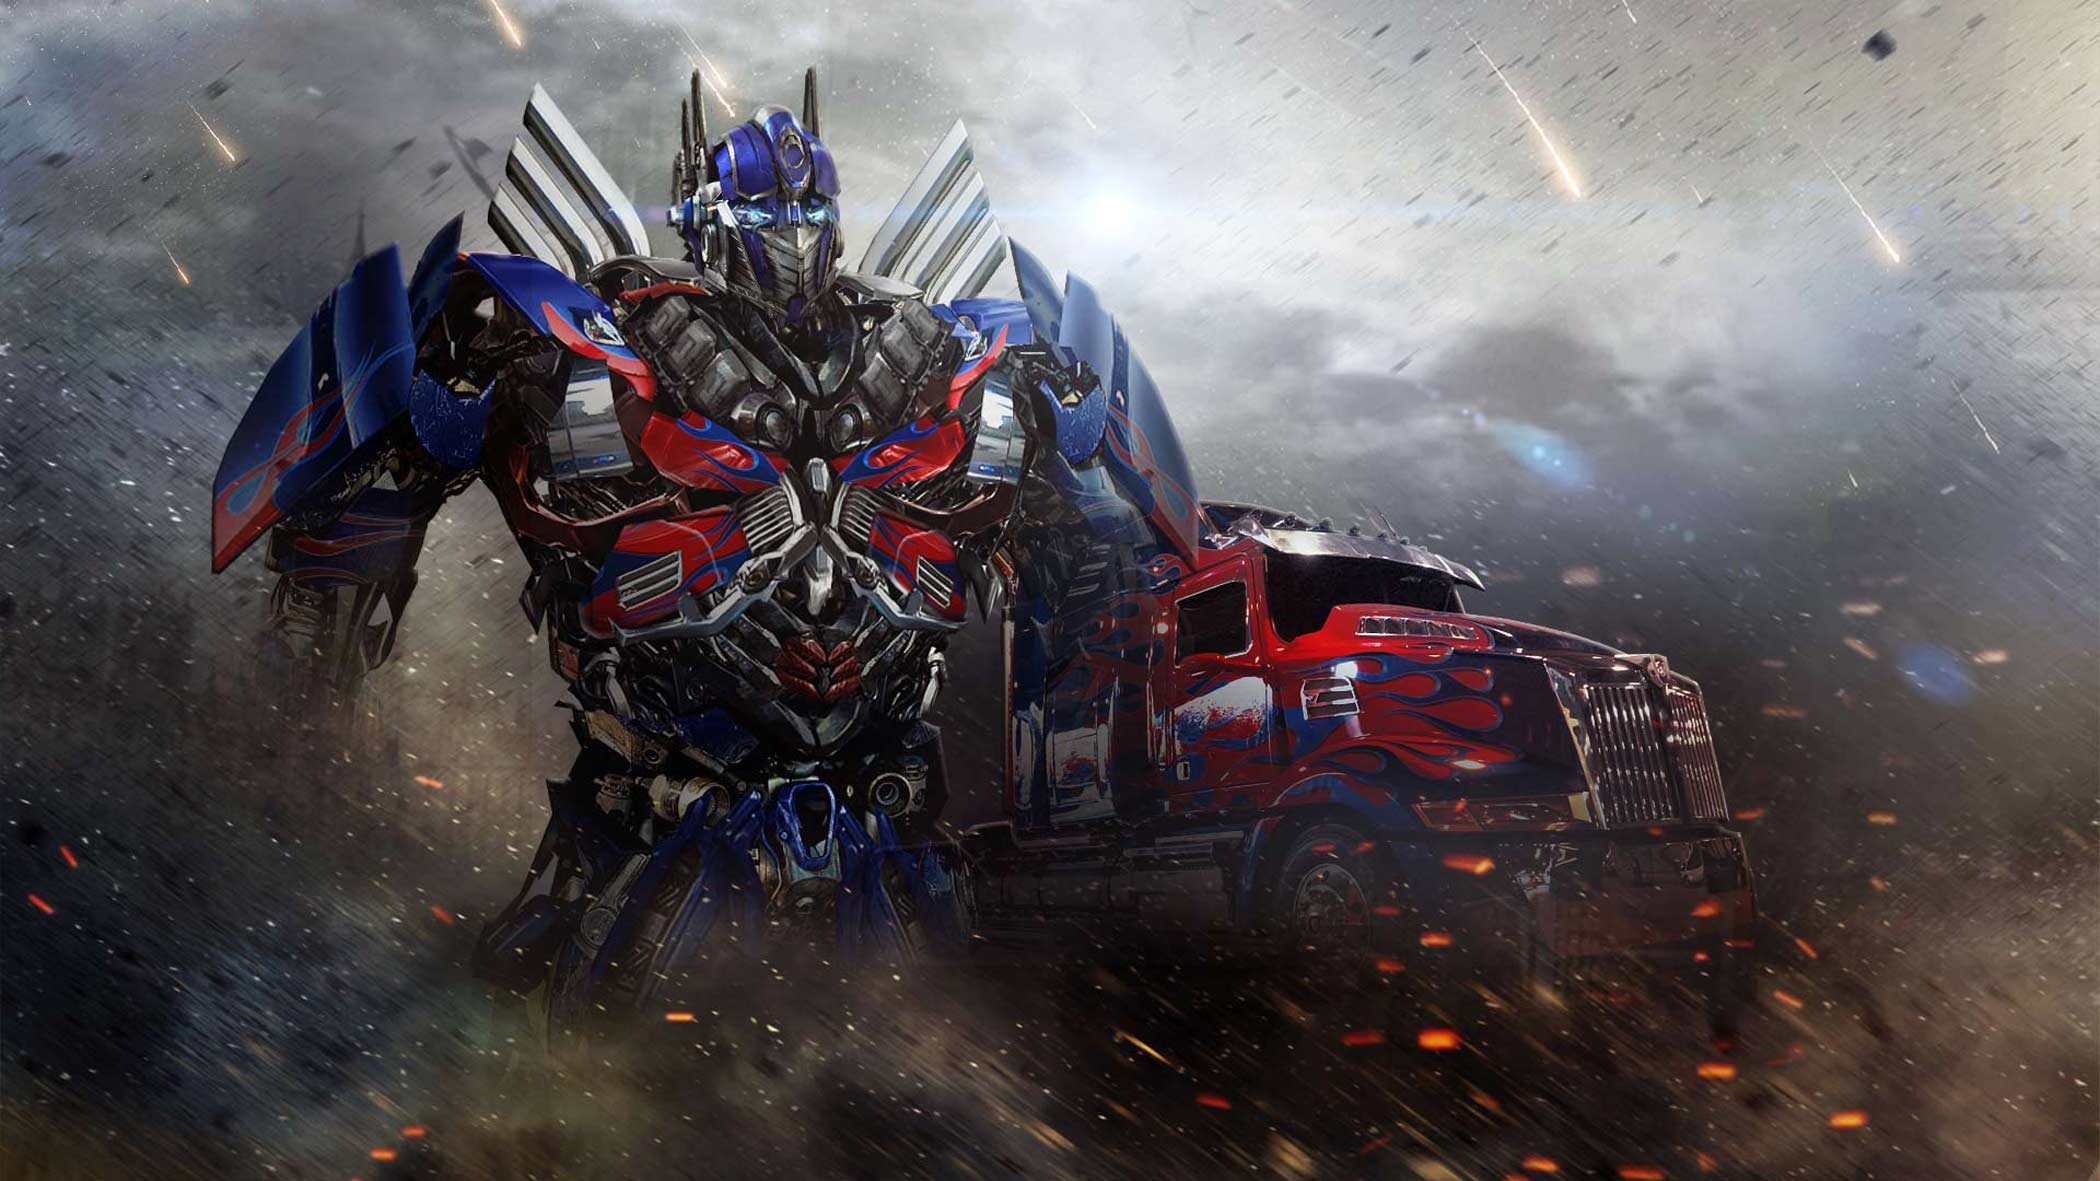 Transformers Wallpapers – Page 1 – HD Wallpapers | Adorable Wallpapers |  Pinterest | Hd wallpaper and Wallpaper